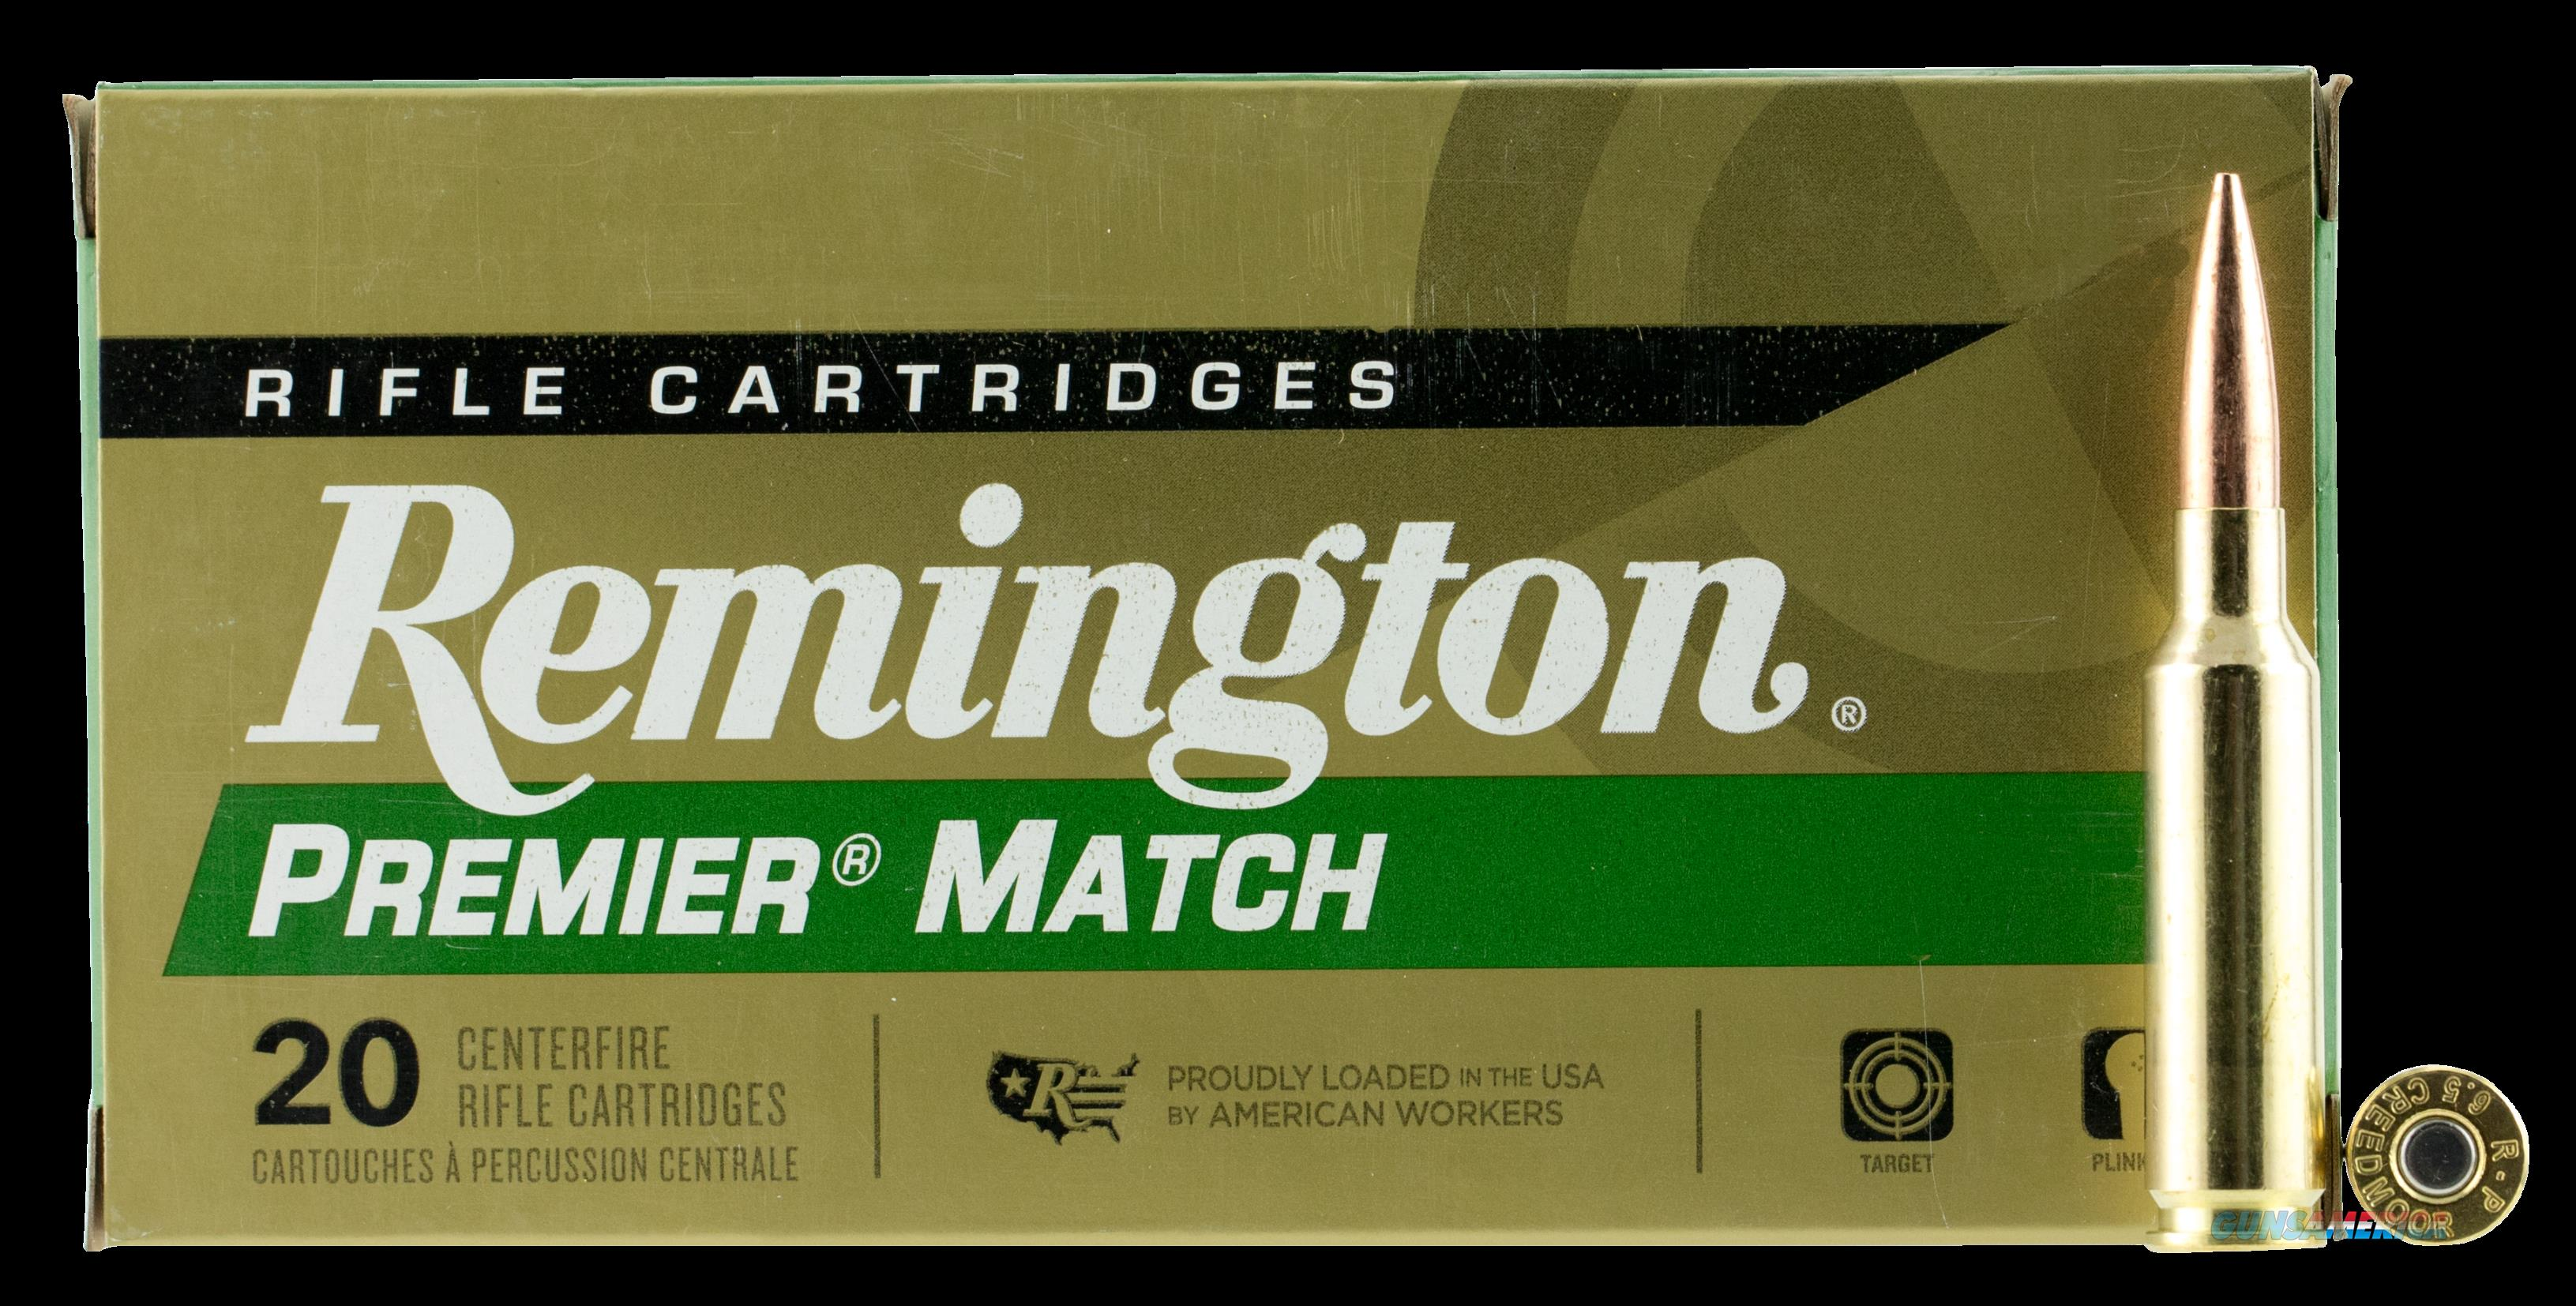 Remington Ammunition Premier, Rem 27661 Rm65cr  6.5crd   140 Otm Bt  20-10  Guns > Pistols > 1911 Pistol Copies (non-Colt)